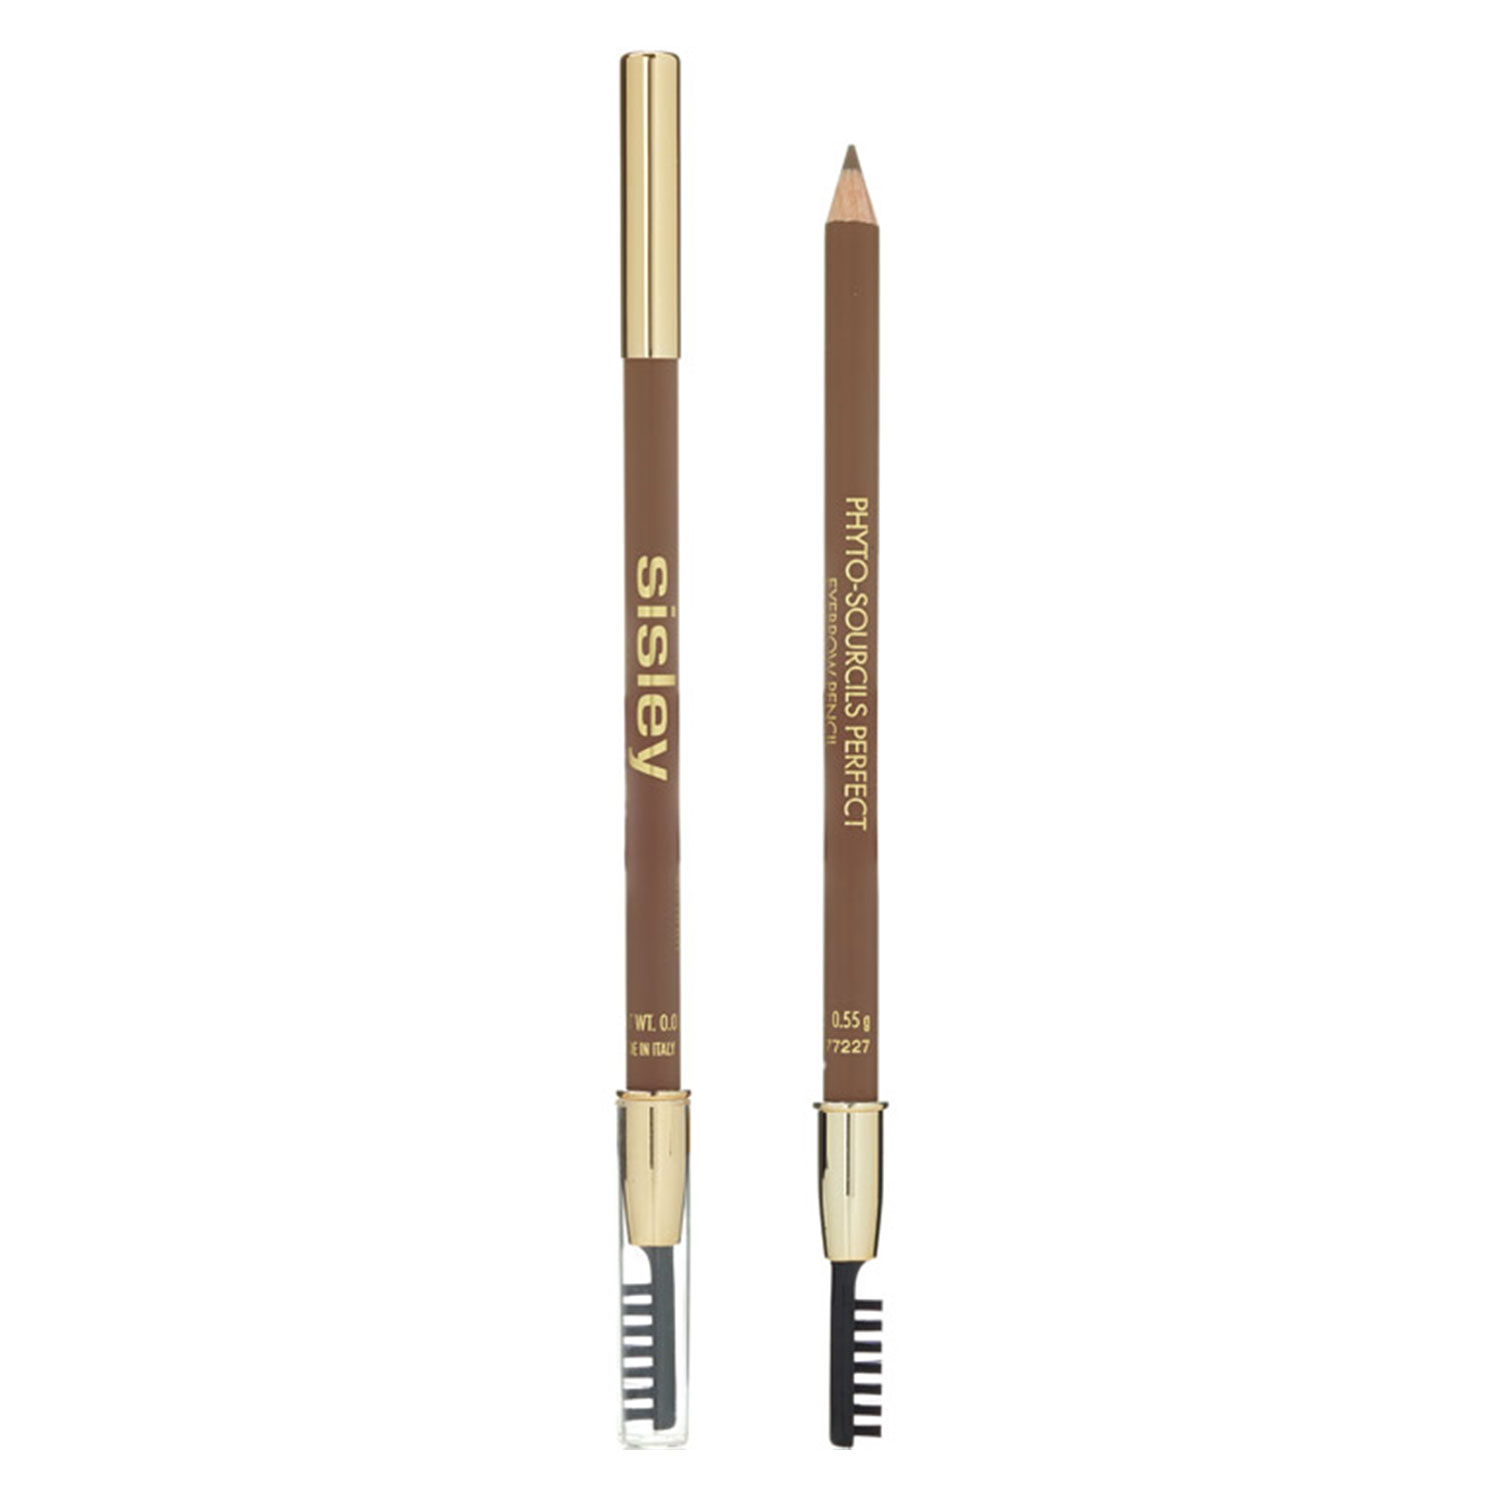 Phyto Sourcils - Perfect Blond 1